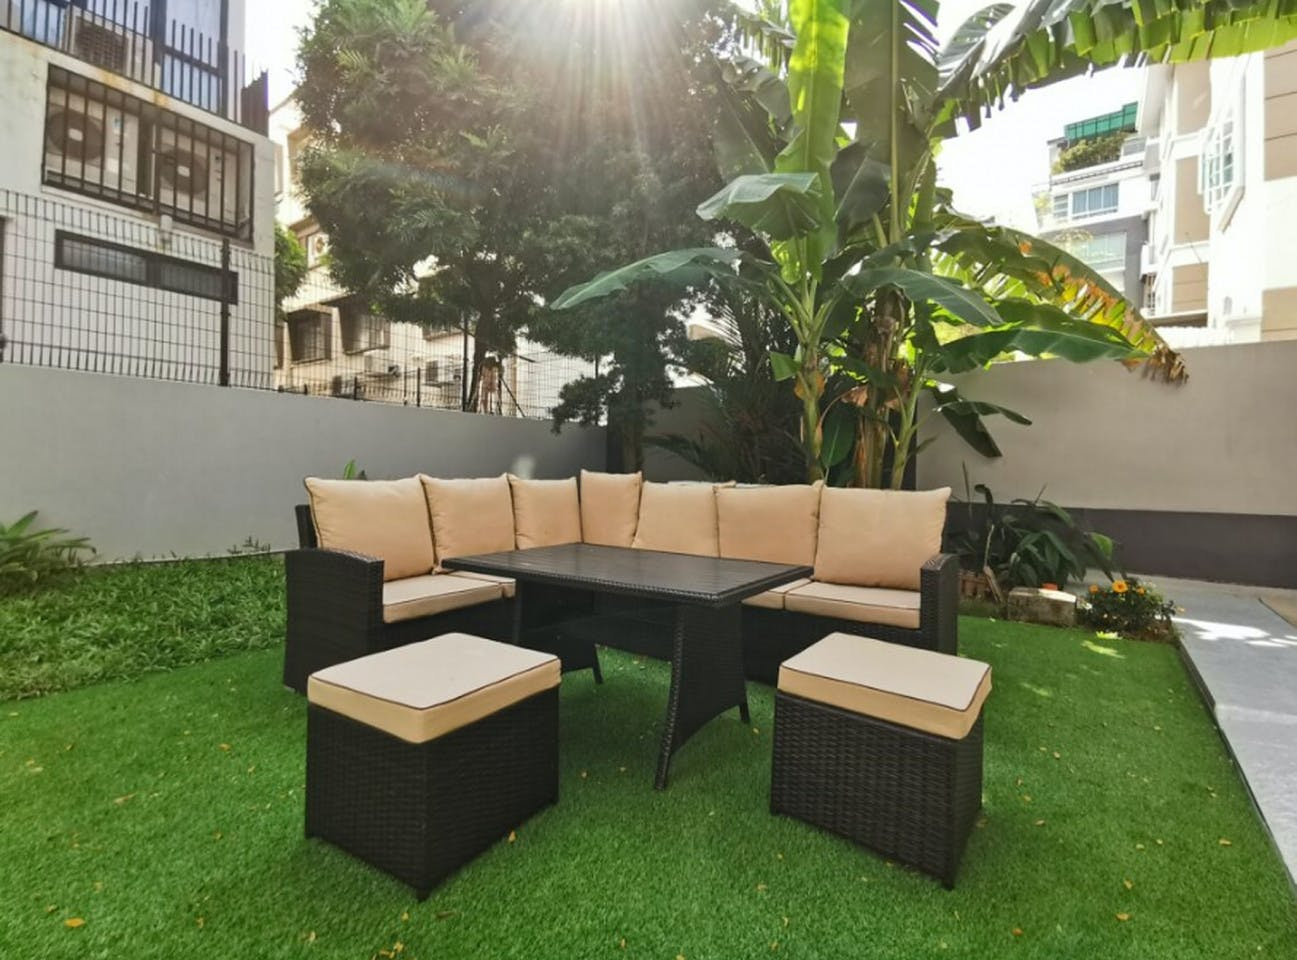 22 Residents   Joo Chiat   Airy Minimalist Style Apt. - Incl. Terrace + Outdoor Areas.